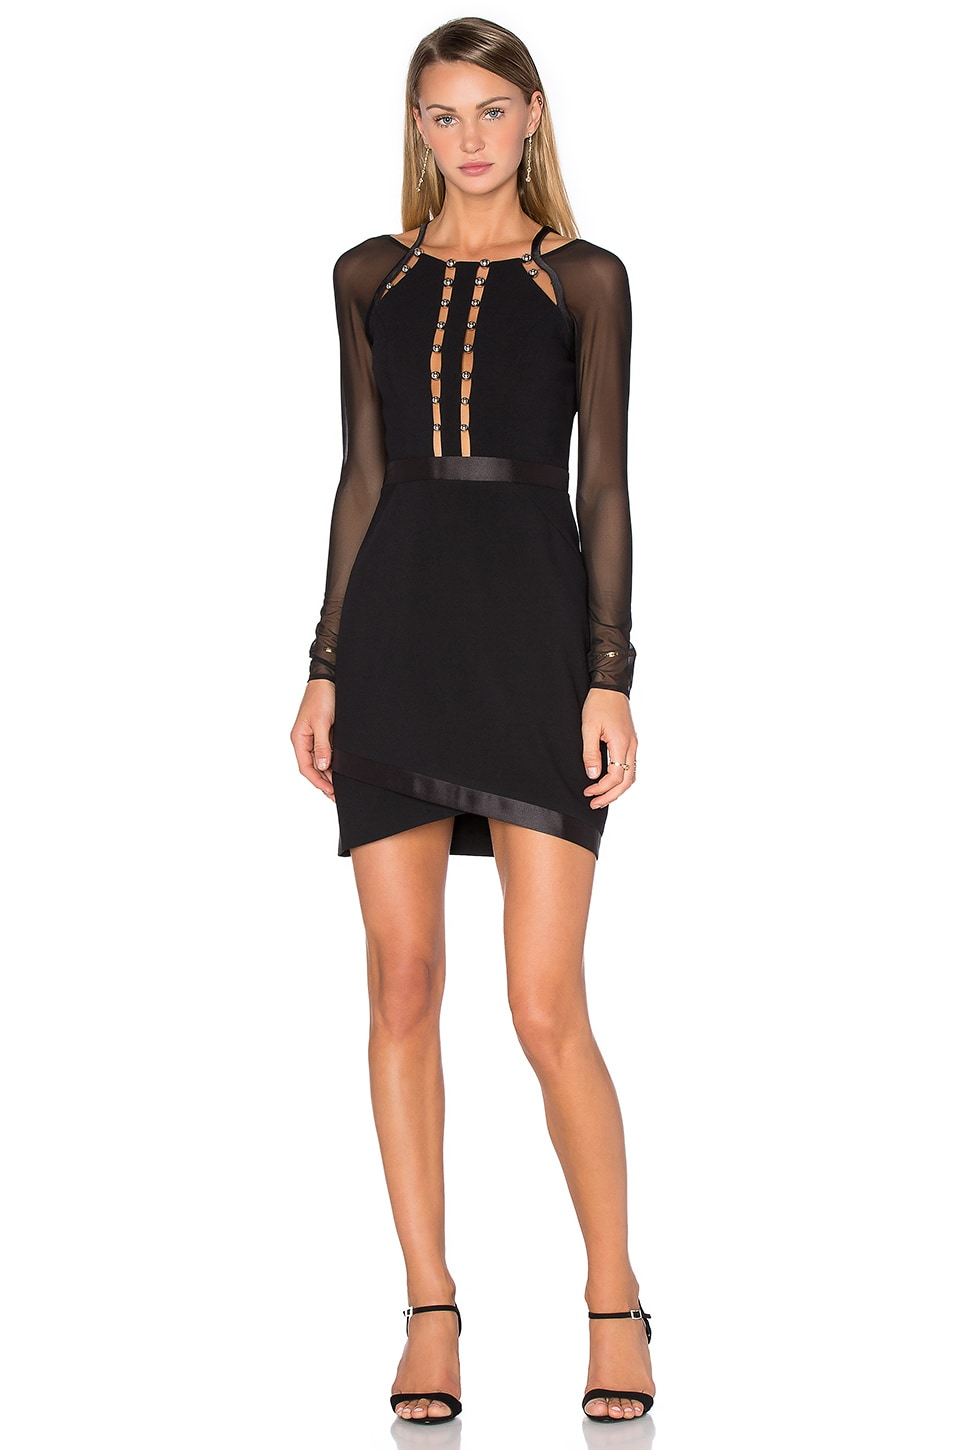 Take Charge Dress by Three Floor